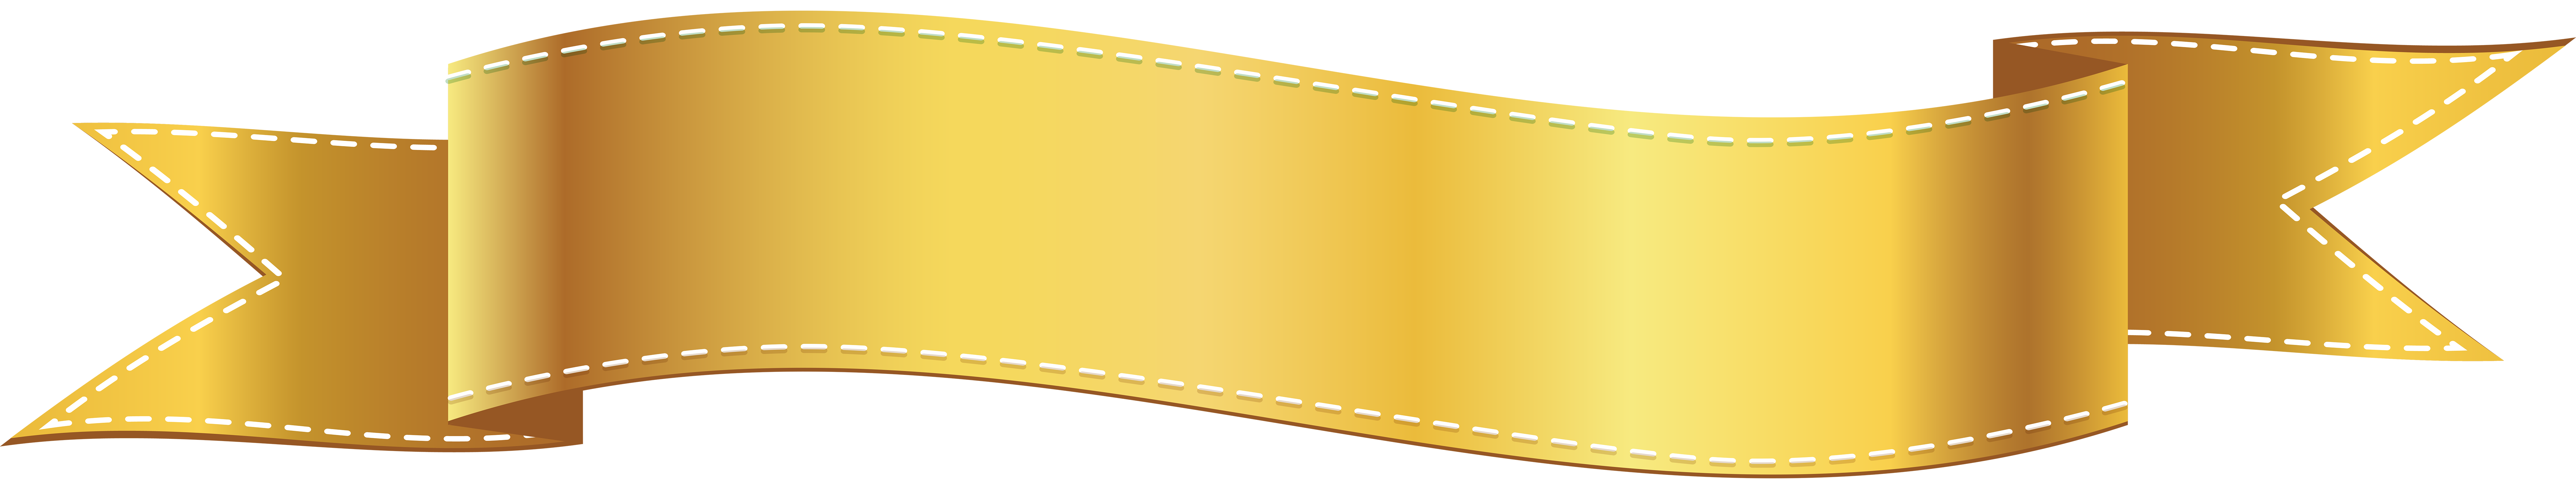 Banner clip art png. Golden image gallery yopriceville